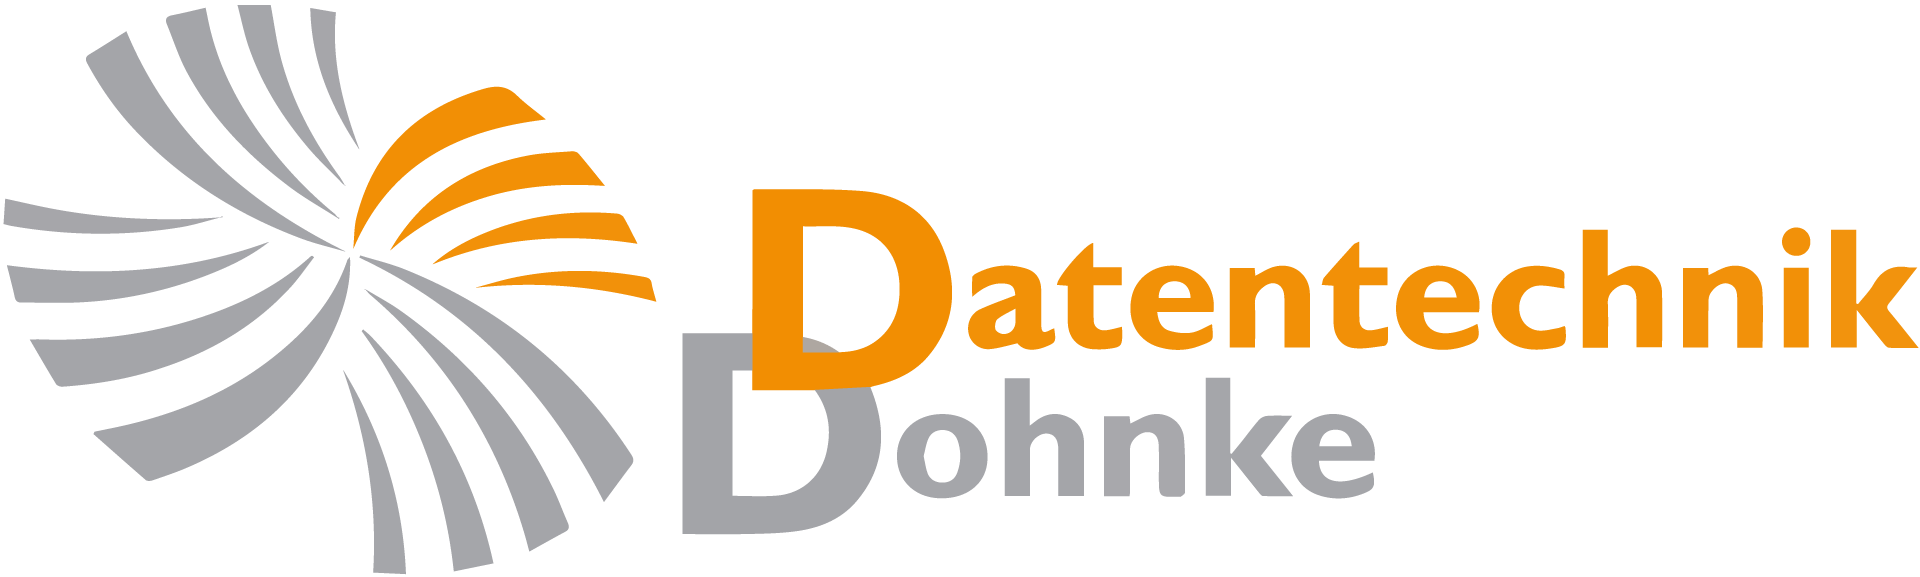 Datentechnik Dohnke